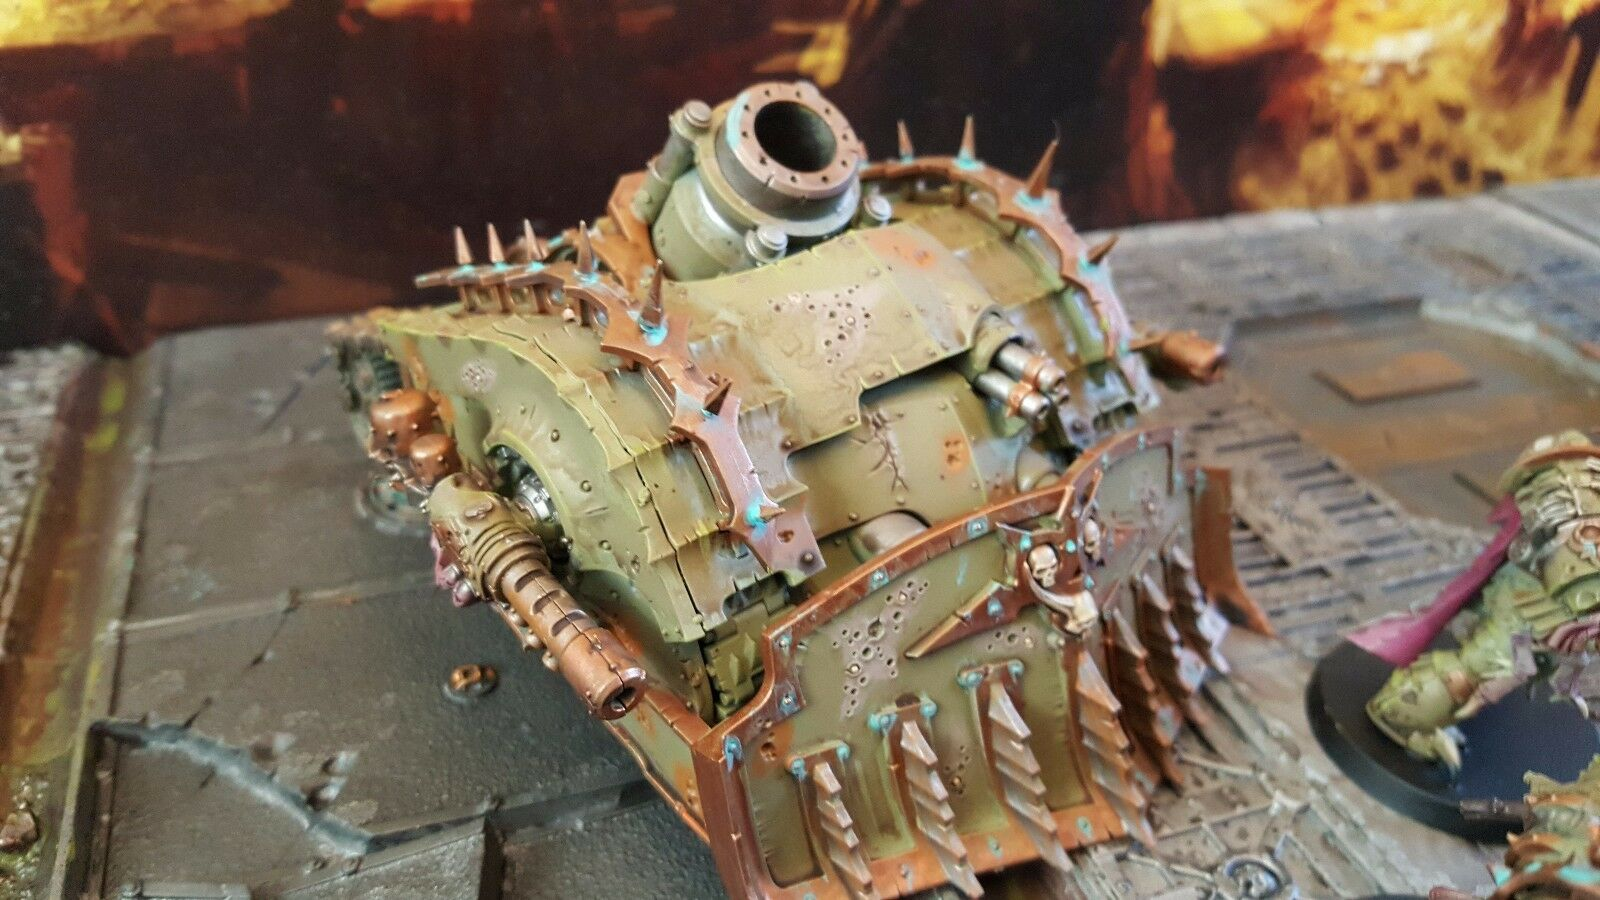 Warhammer 40k death guard pro painted  plagueburst crawler made to order